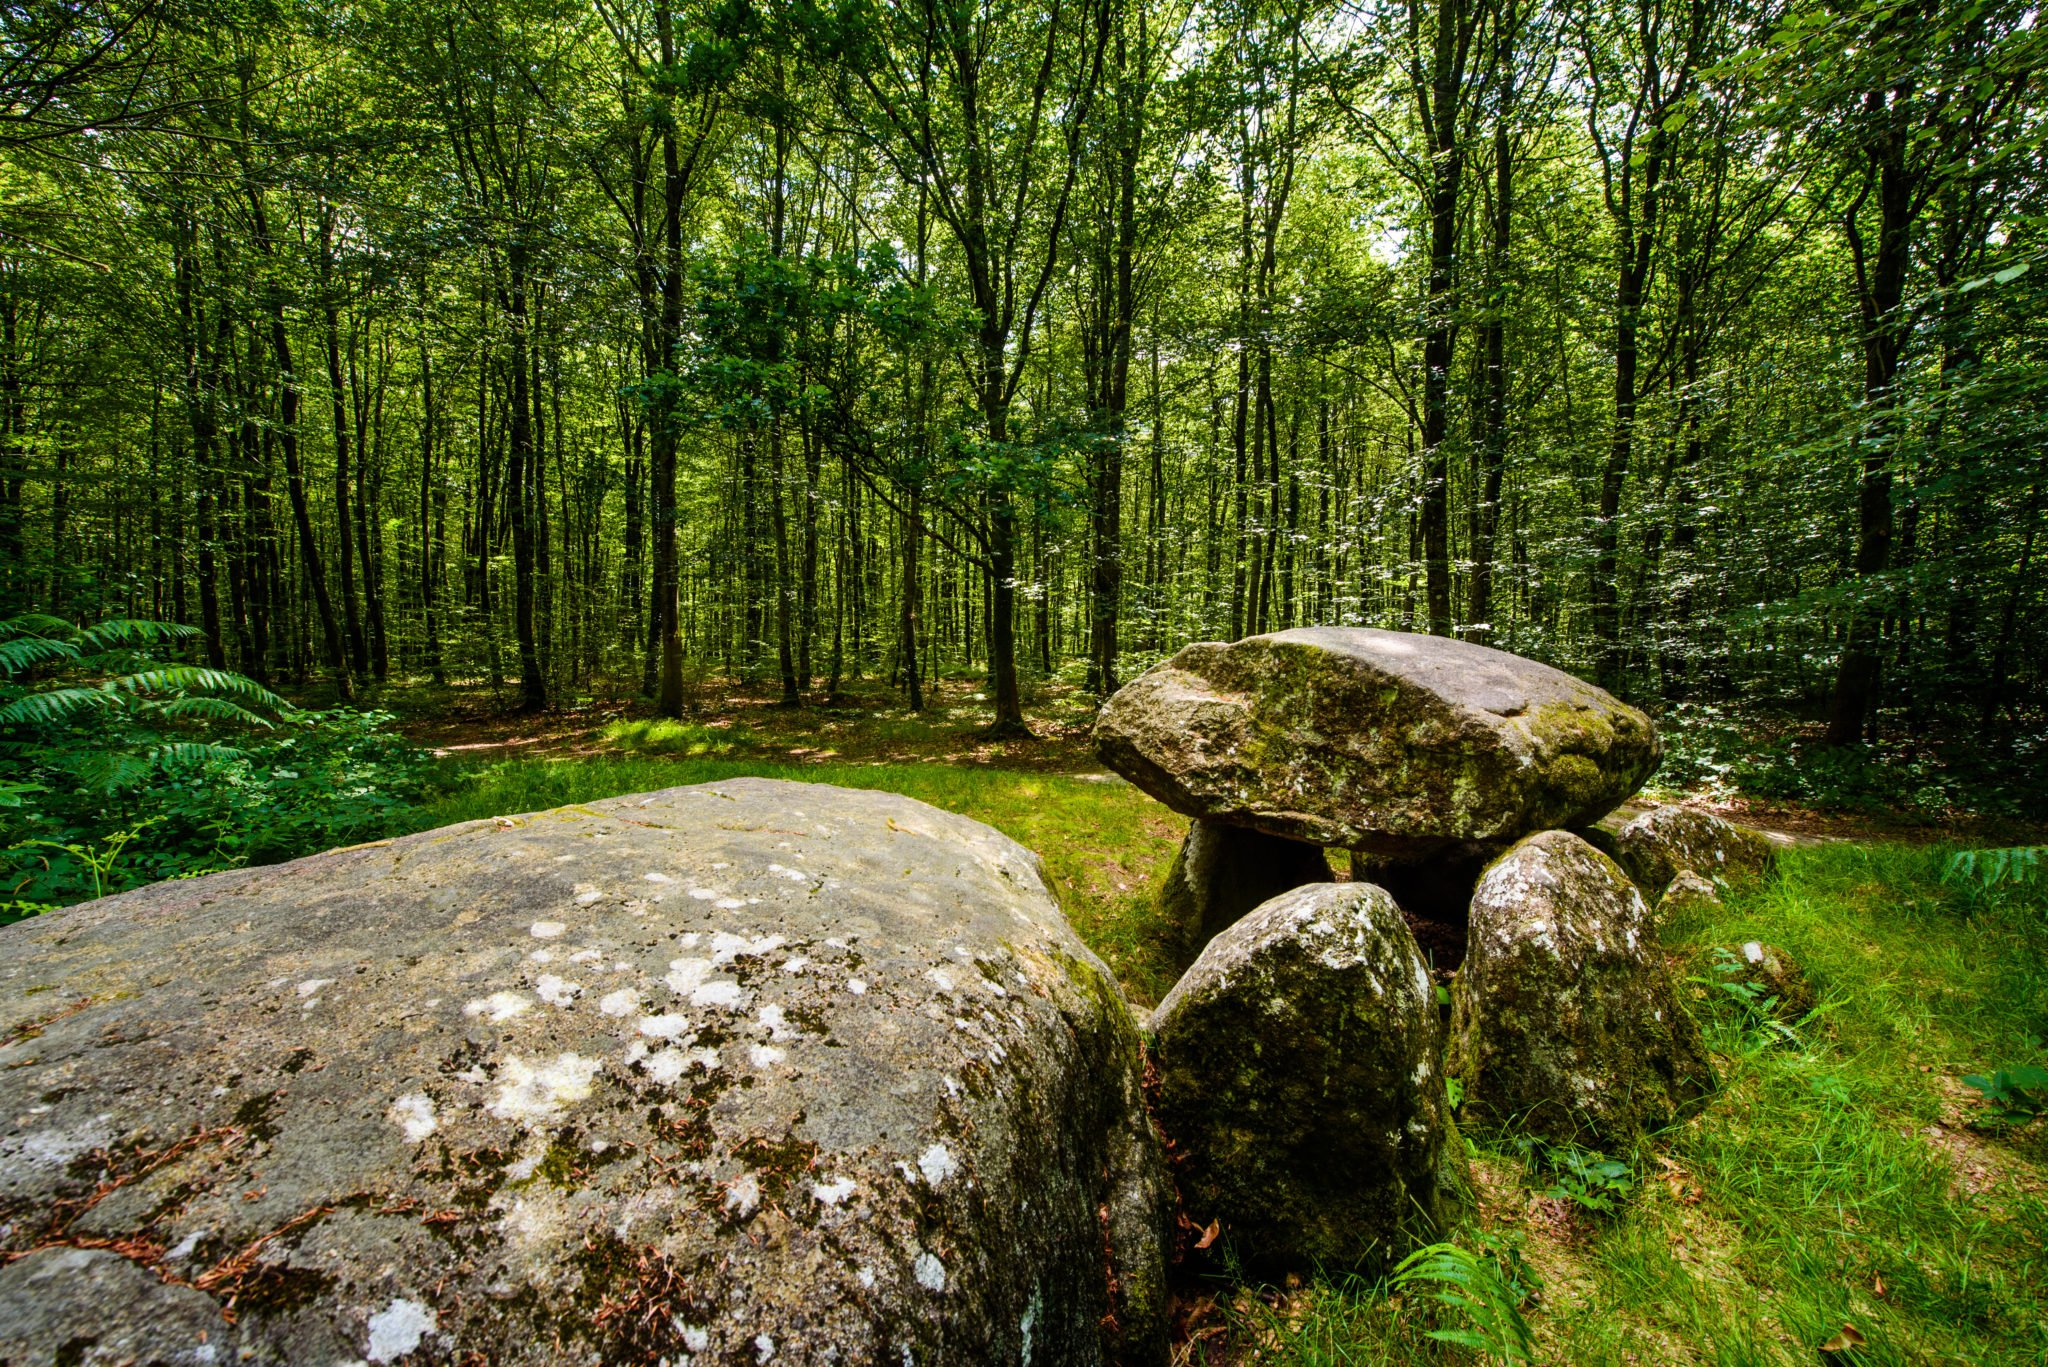 A dolmen in the forest trace of celts in the brittany region